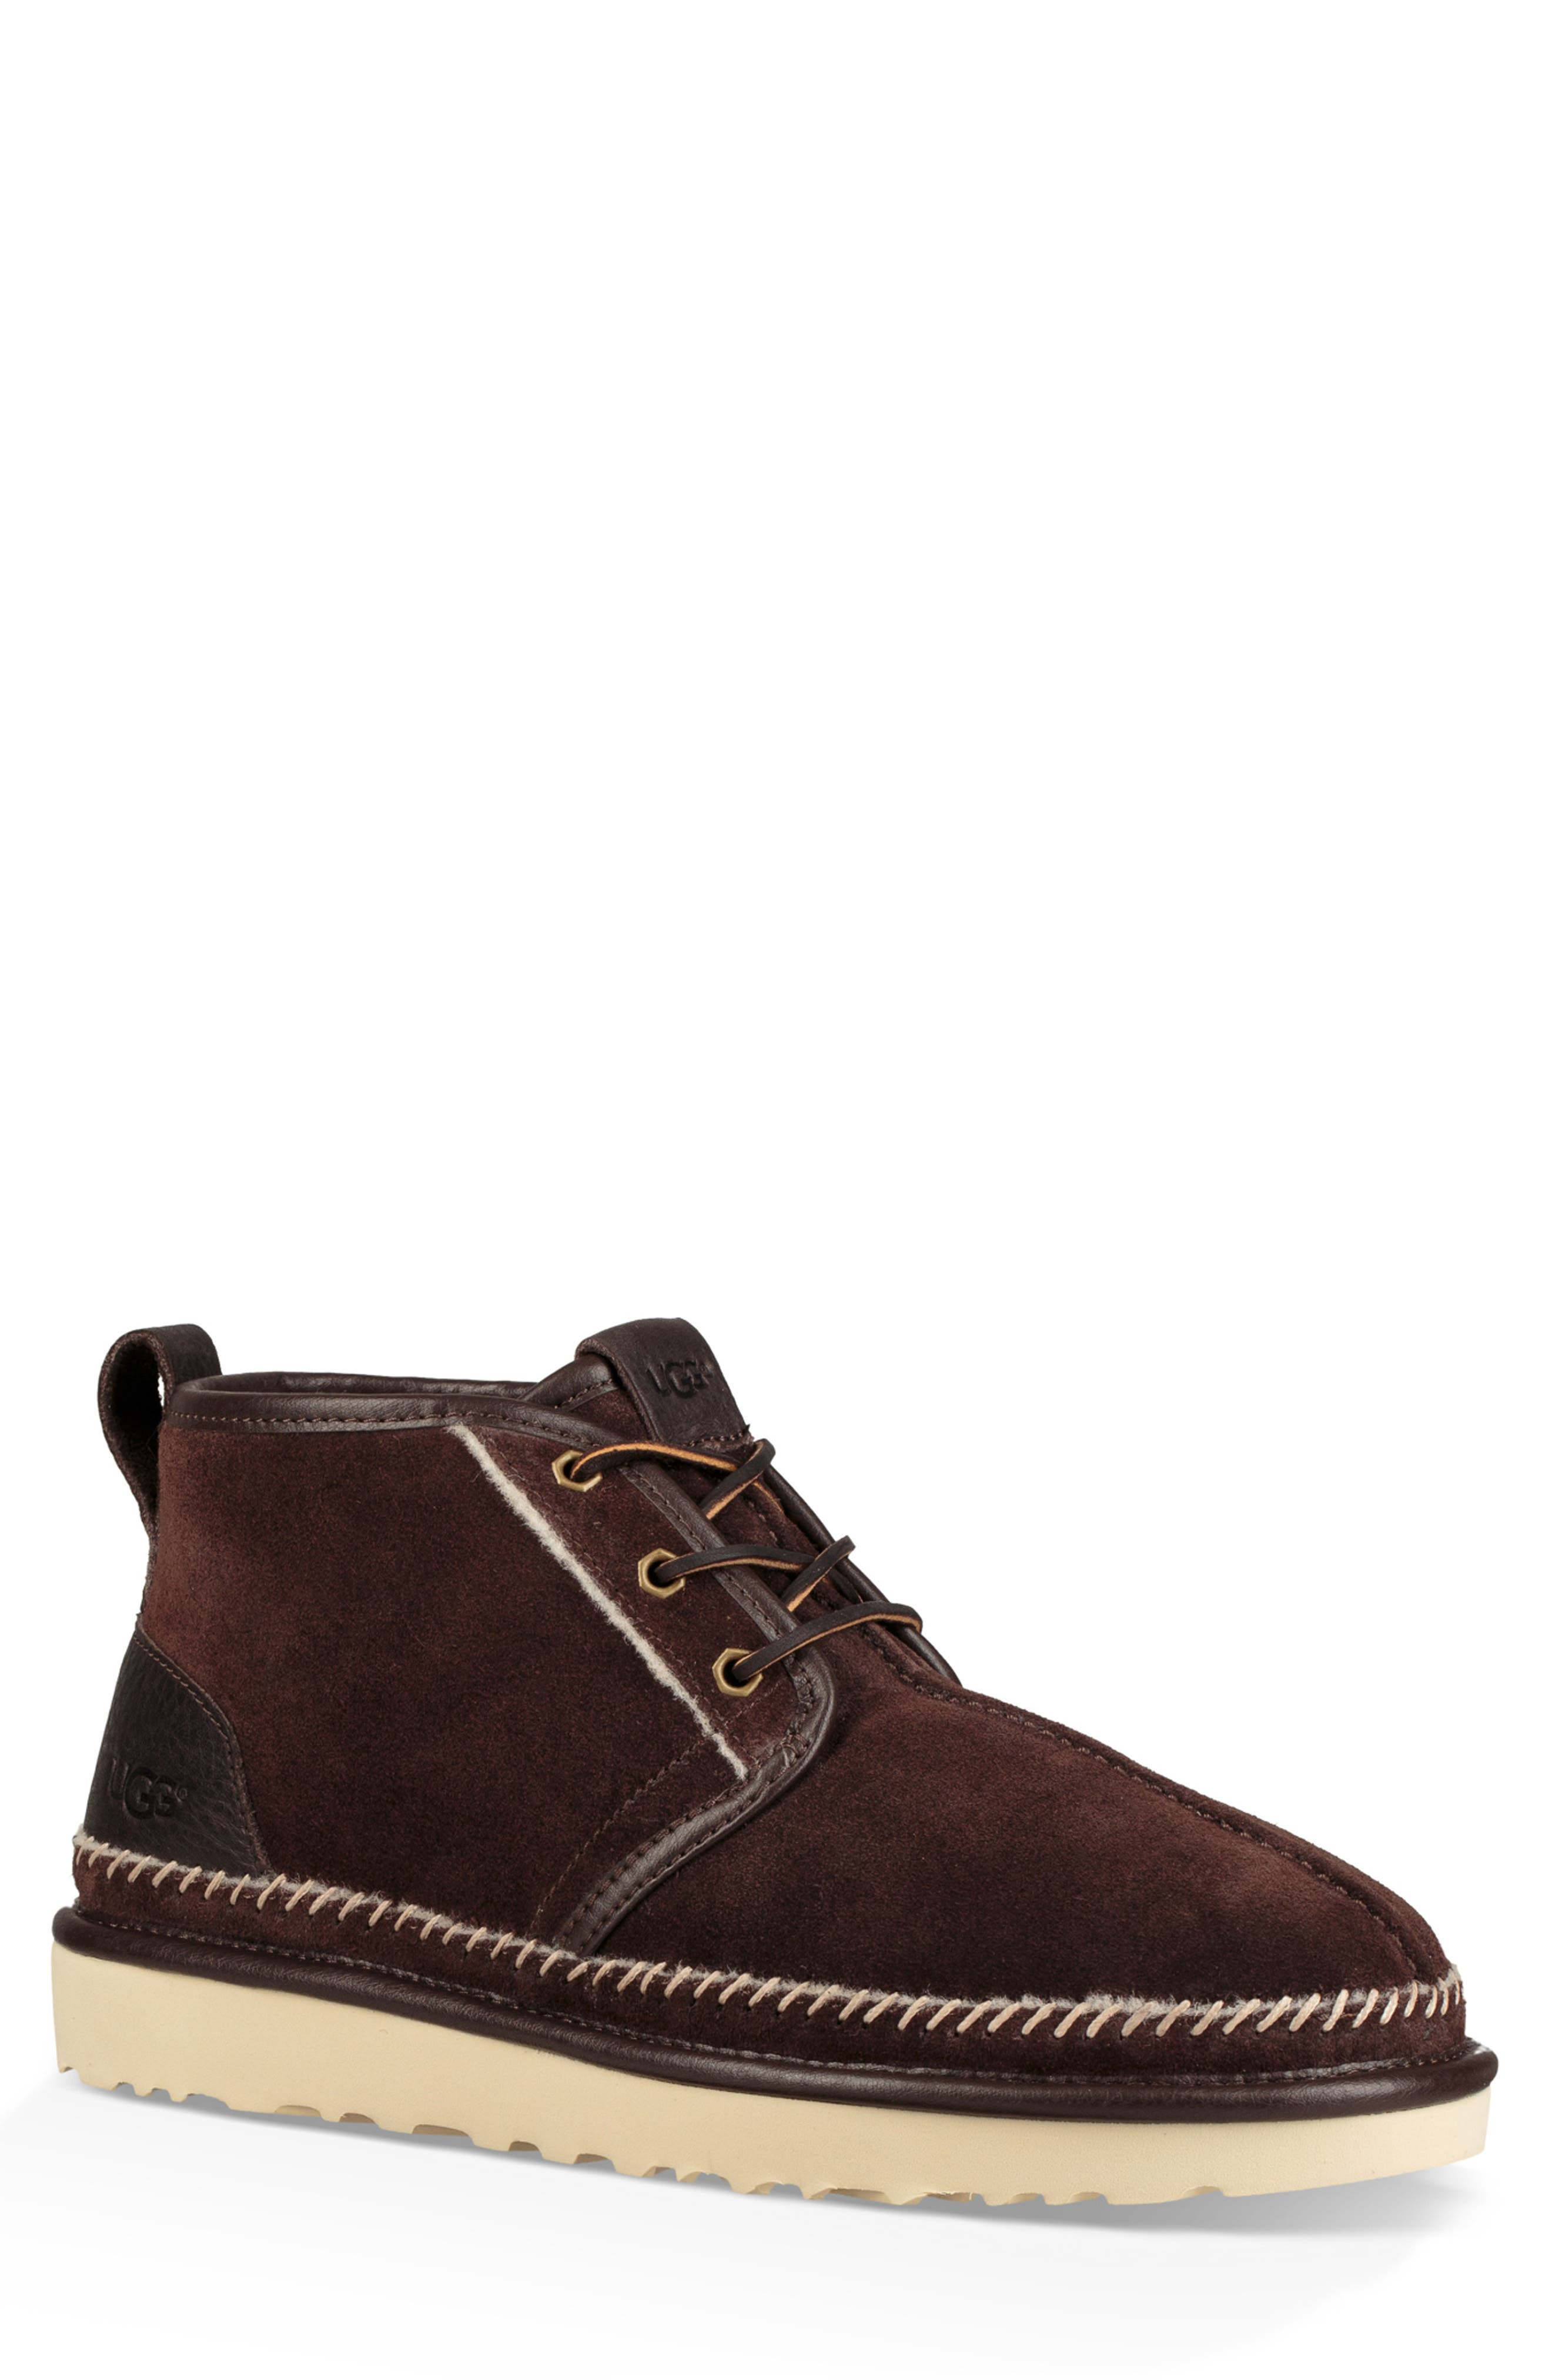 Neumel Stitch Chukka Boot,                         Main,                         color, STOUT